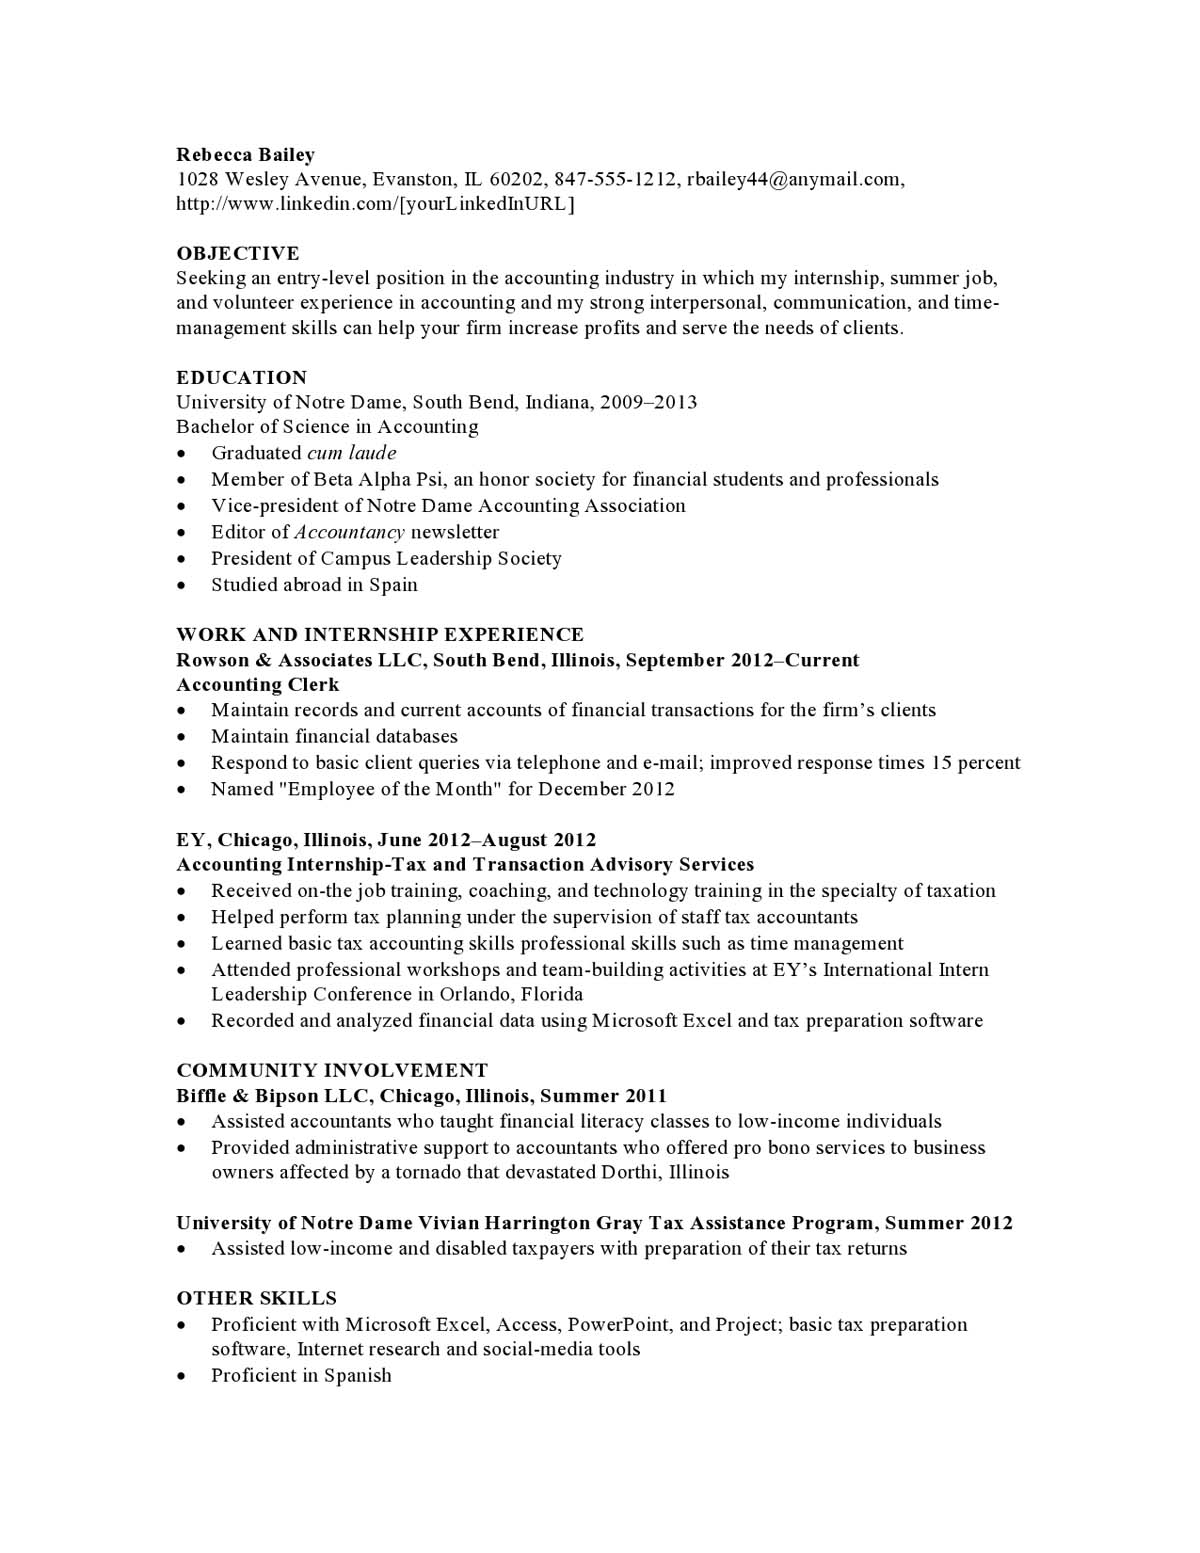 resume samples templates examples vault professional memberships on crescoact19 for Resume Professional Memberships On Resume Examples